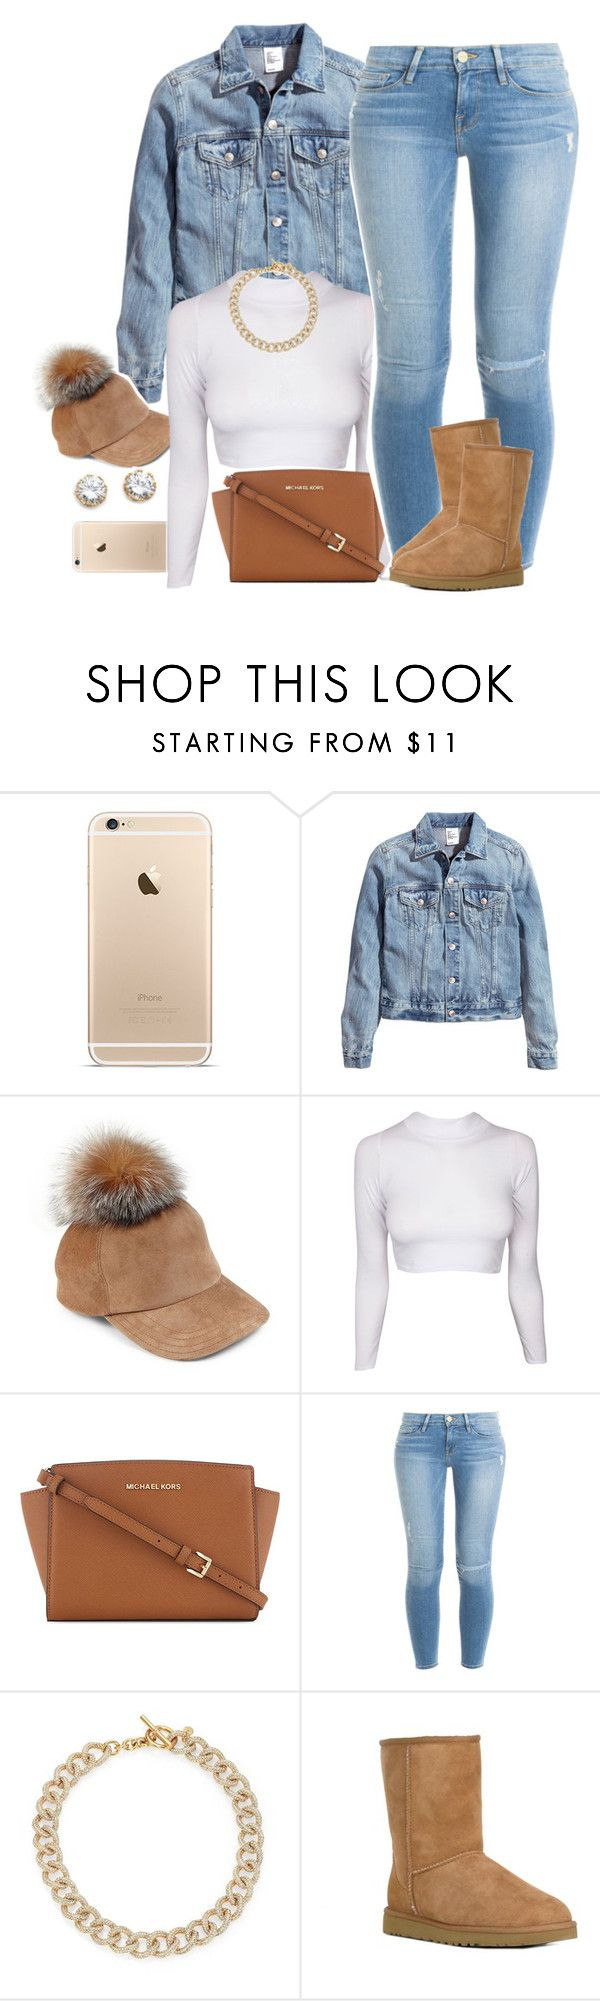 """Untitled #1545"" by lulu-foreva ❤ liked on Polyvore featuring H&M, Lola, MICHAEL Michael Kors, Frame Denim, Michael Kors, UGG Australia, Kenneth Jay Lane, women's clothing, women's fashion and women"